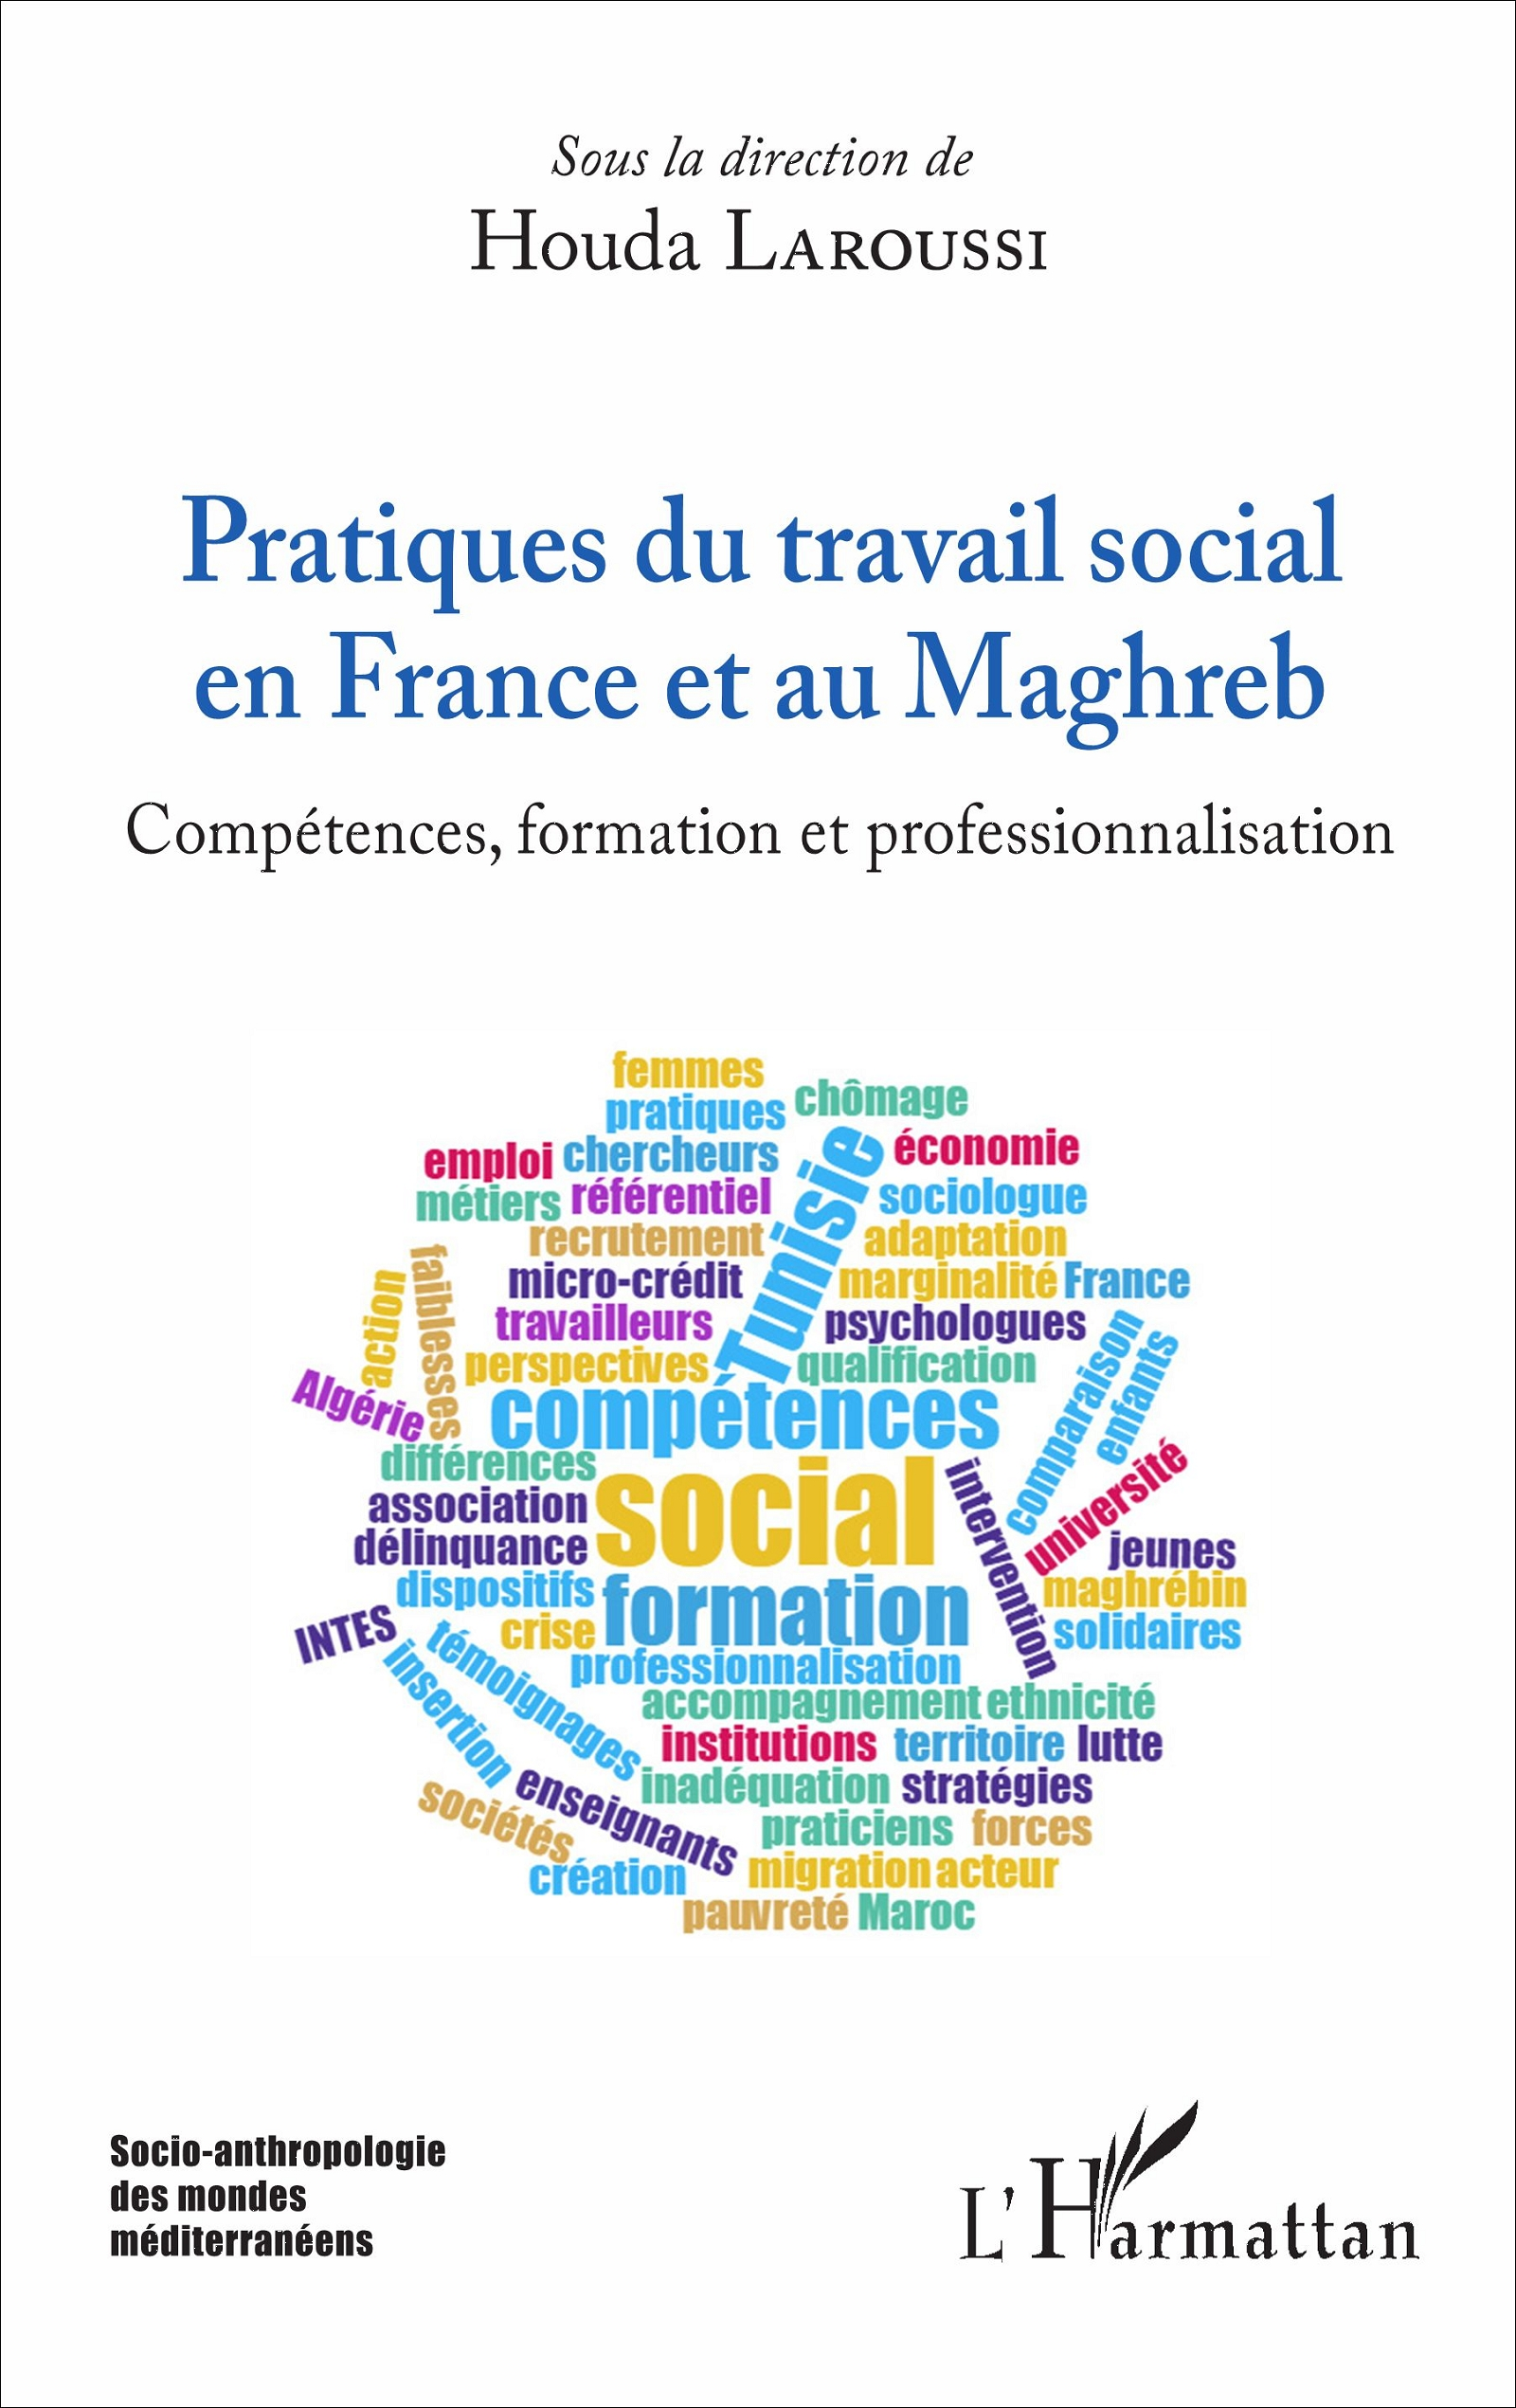 rencontre maghrebine france